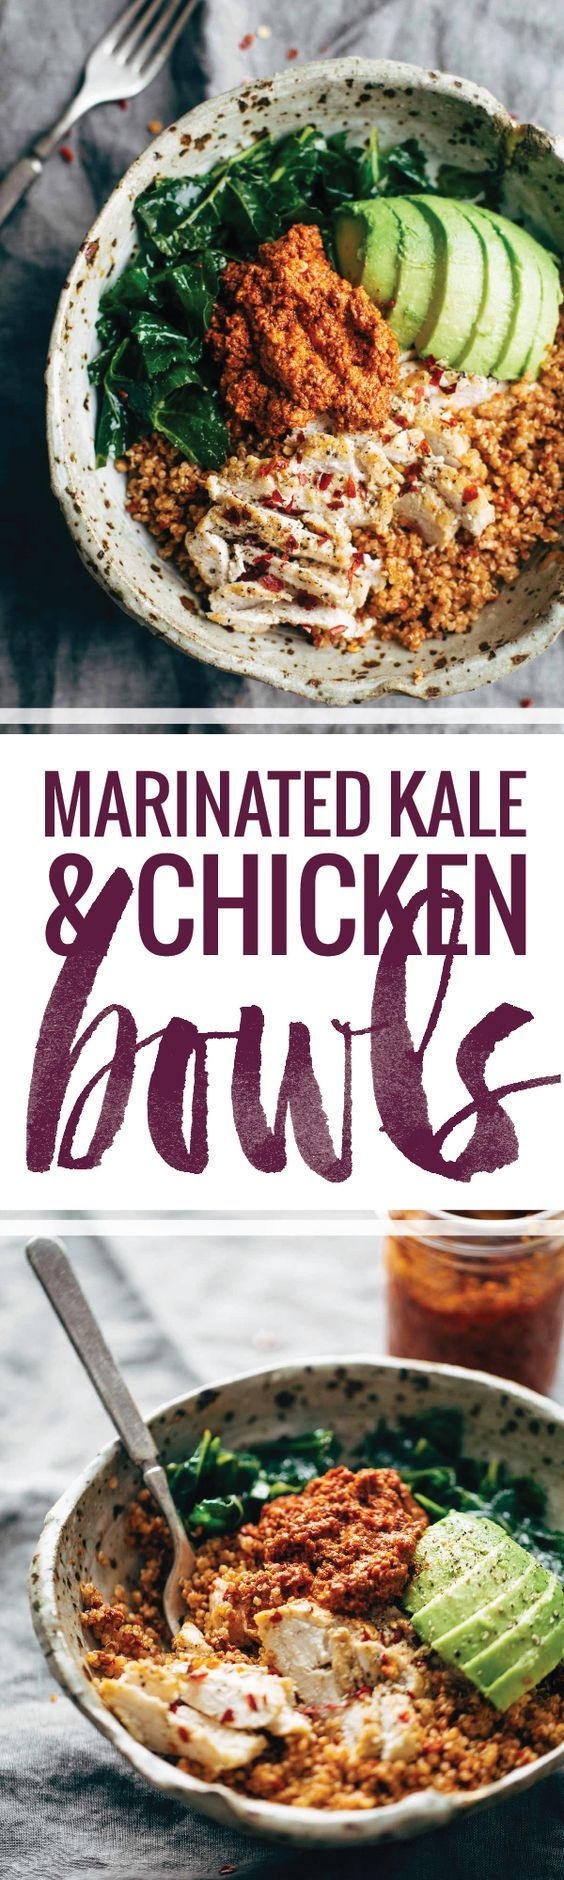 Marinated Kale and Chicken Quinoa Bowl with Sun Dried Tomato Sauce! this recipe is clean, simple, and